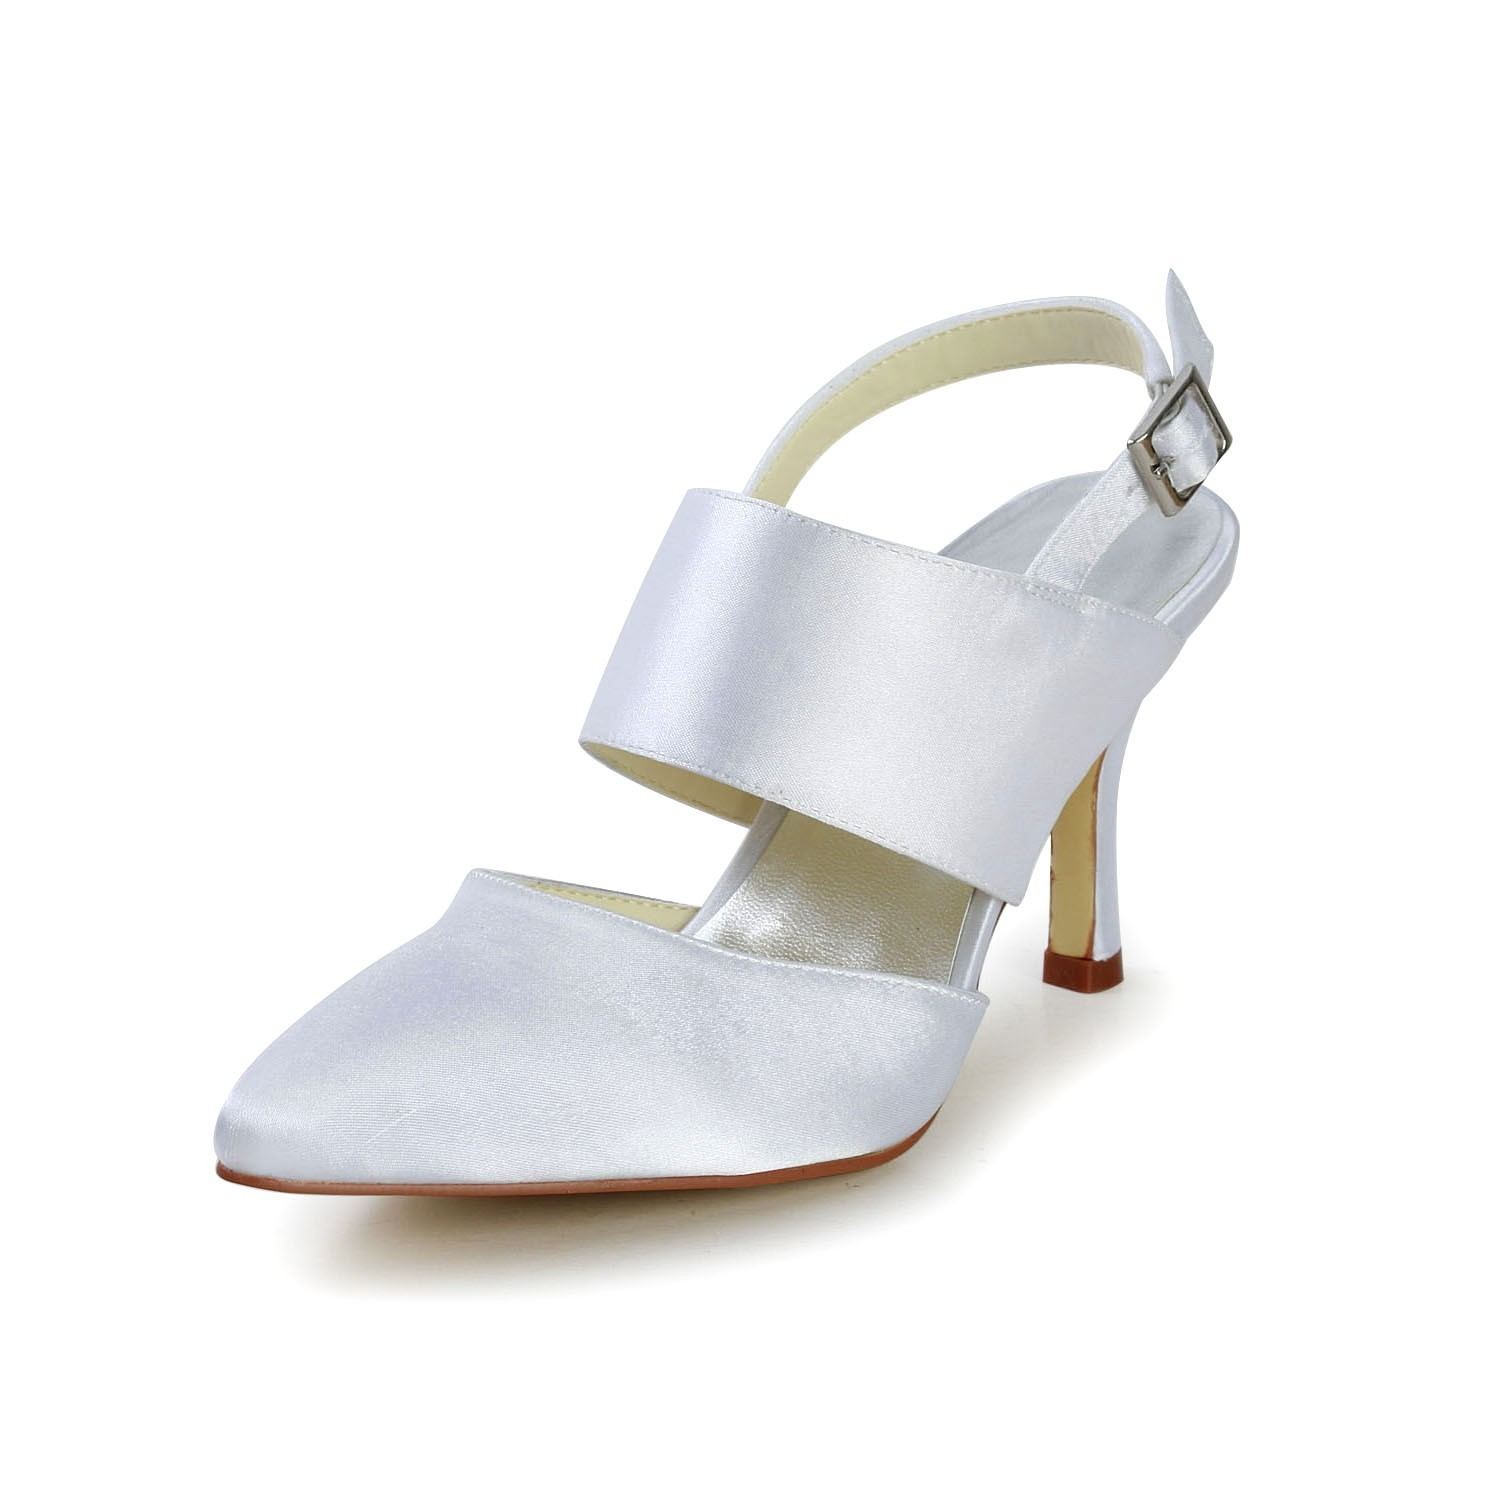 Women s Satin Stiletto Heel Closed Toe With Buckle White Wedding ... 4f205cfd0105